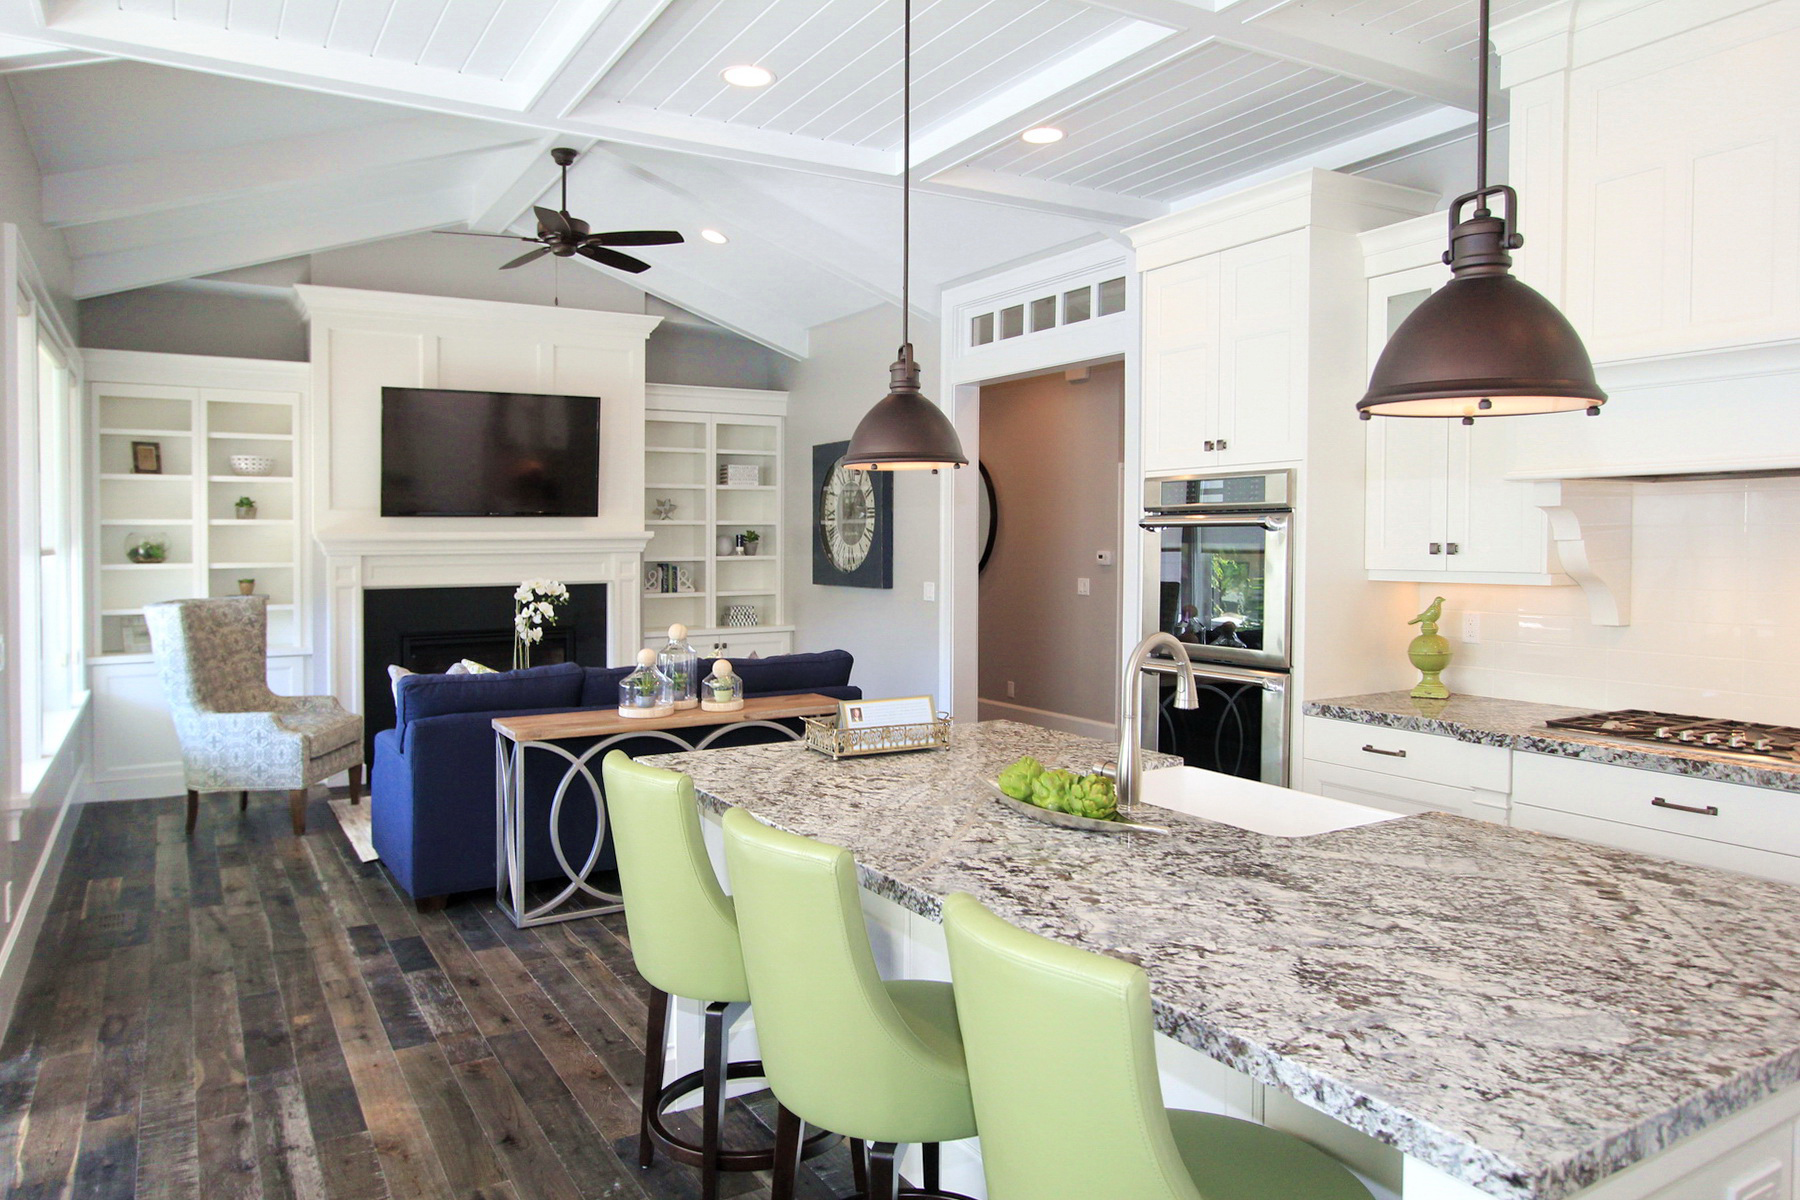 Island Lights For Kitchen Lighting Options Over The Kitchen Island